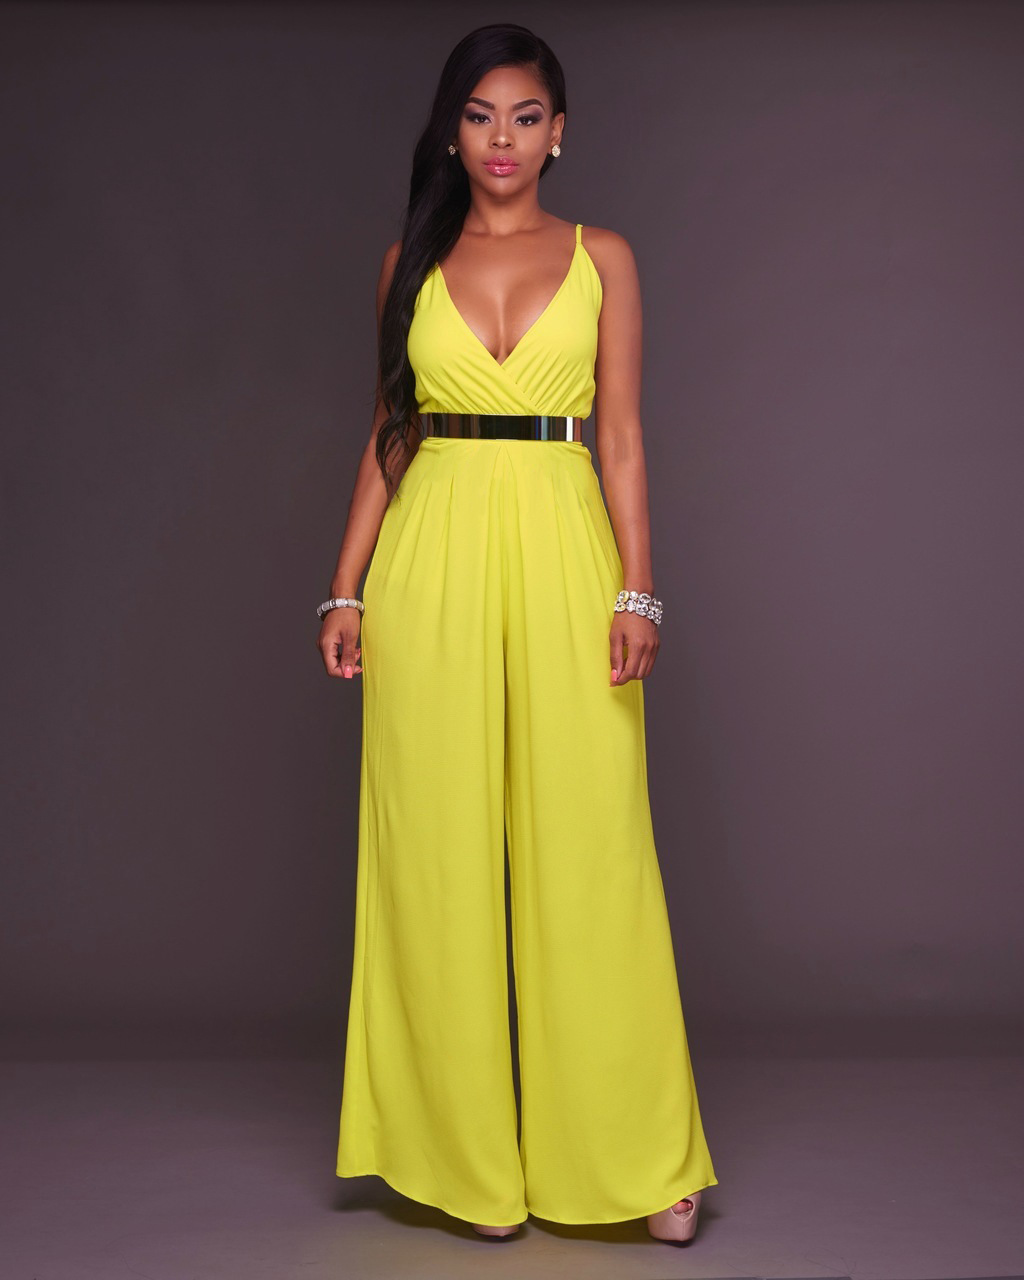 88c3b42e06ed US  7.66 - Light Yellow V-neck High Waist Strappy Loose Jumpsuit 25558-3 -  www.global-lover.com